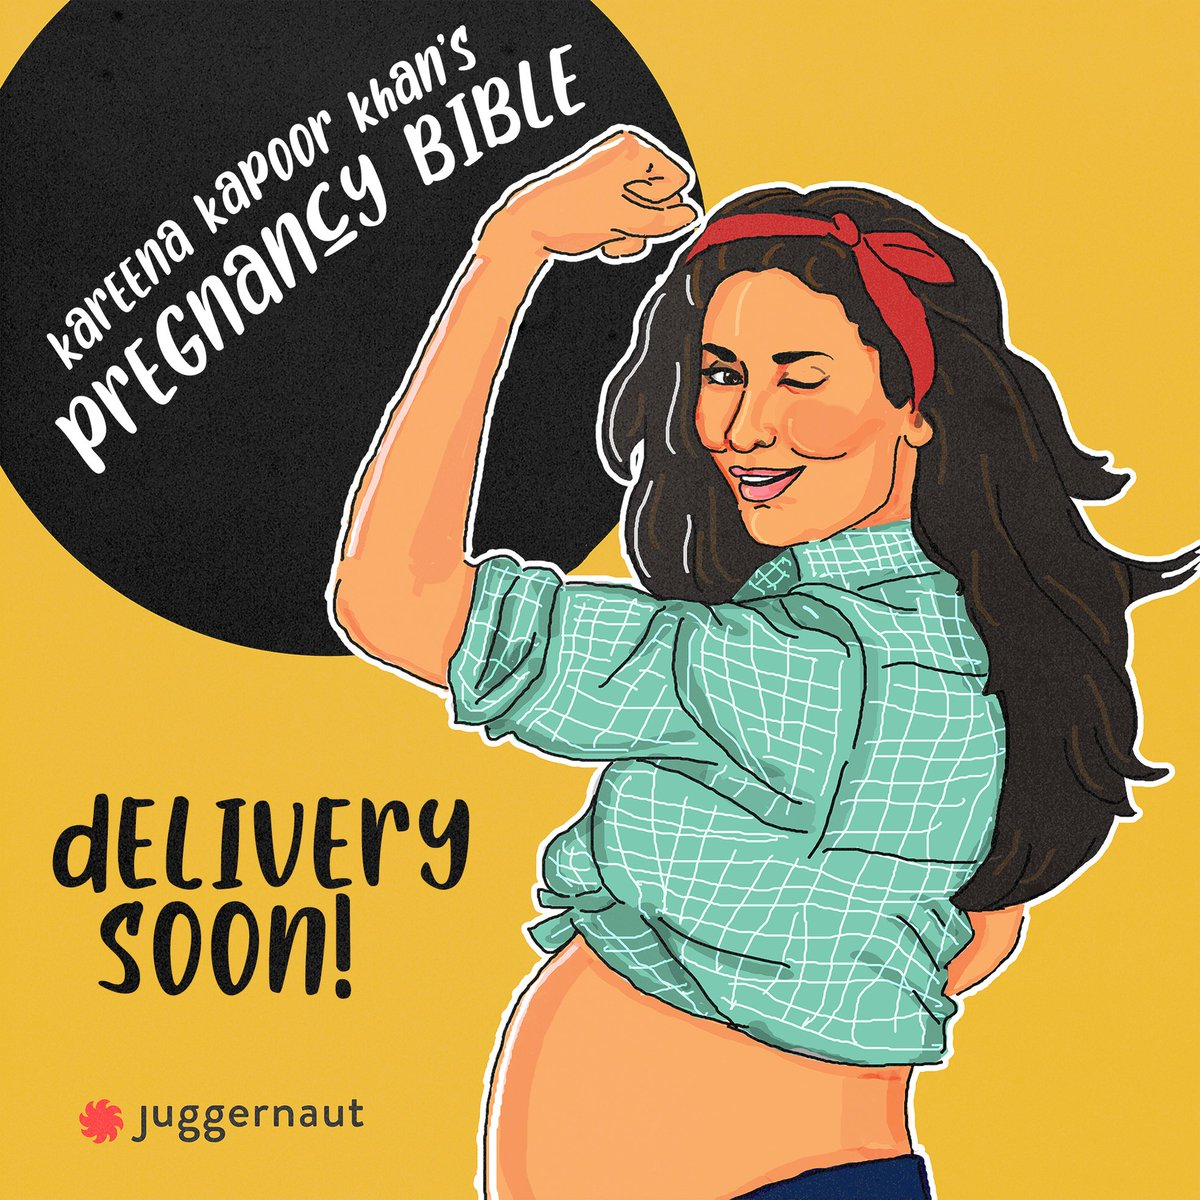 We're thrilled to announce that we will be publishing Kareena Kapoor Khan's Pregnancy Bible!   In the book, she'll talk about everything from morning sickness to diet and fitness and being a mom-on-the-go!  We can't wait for you to read it!